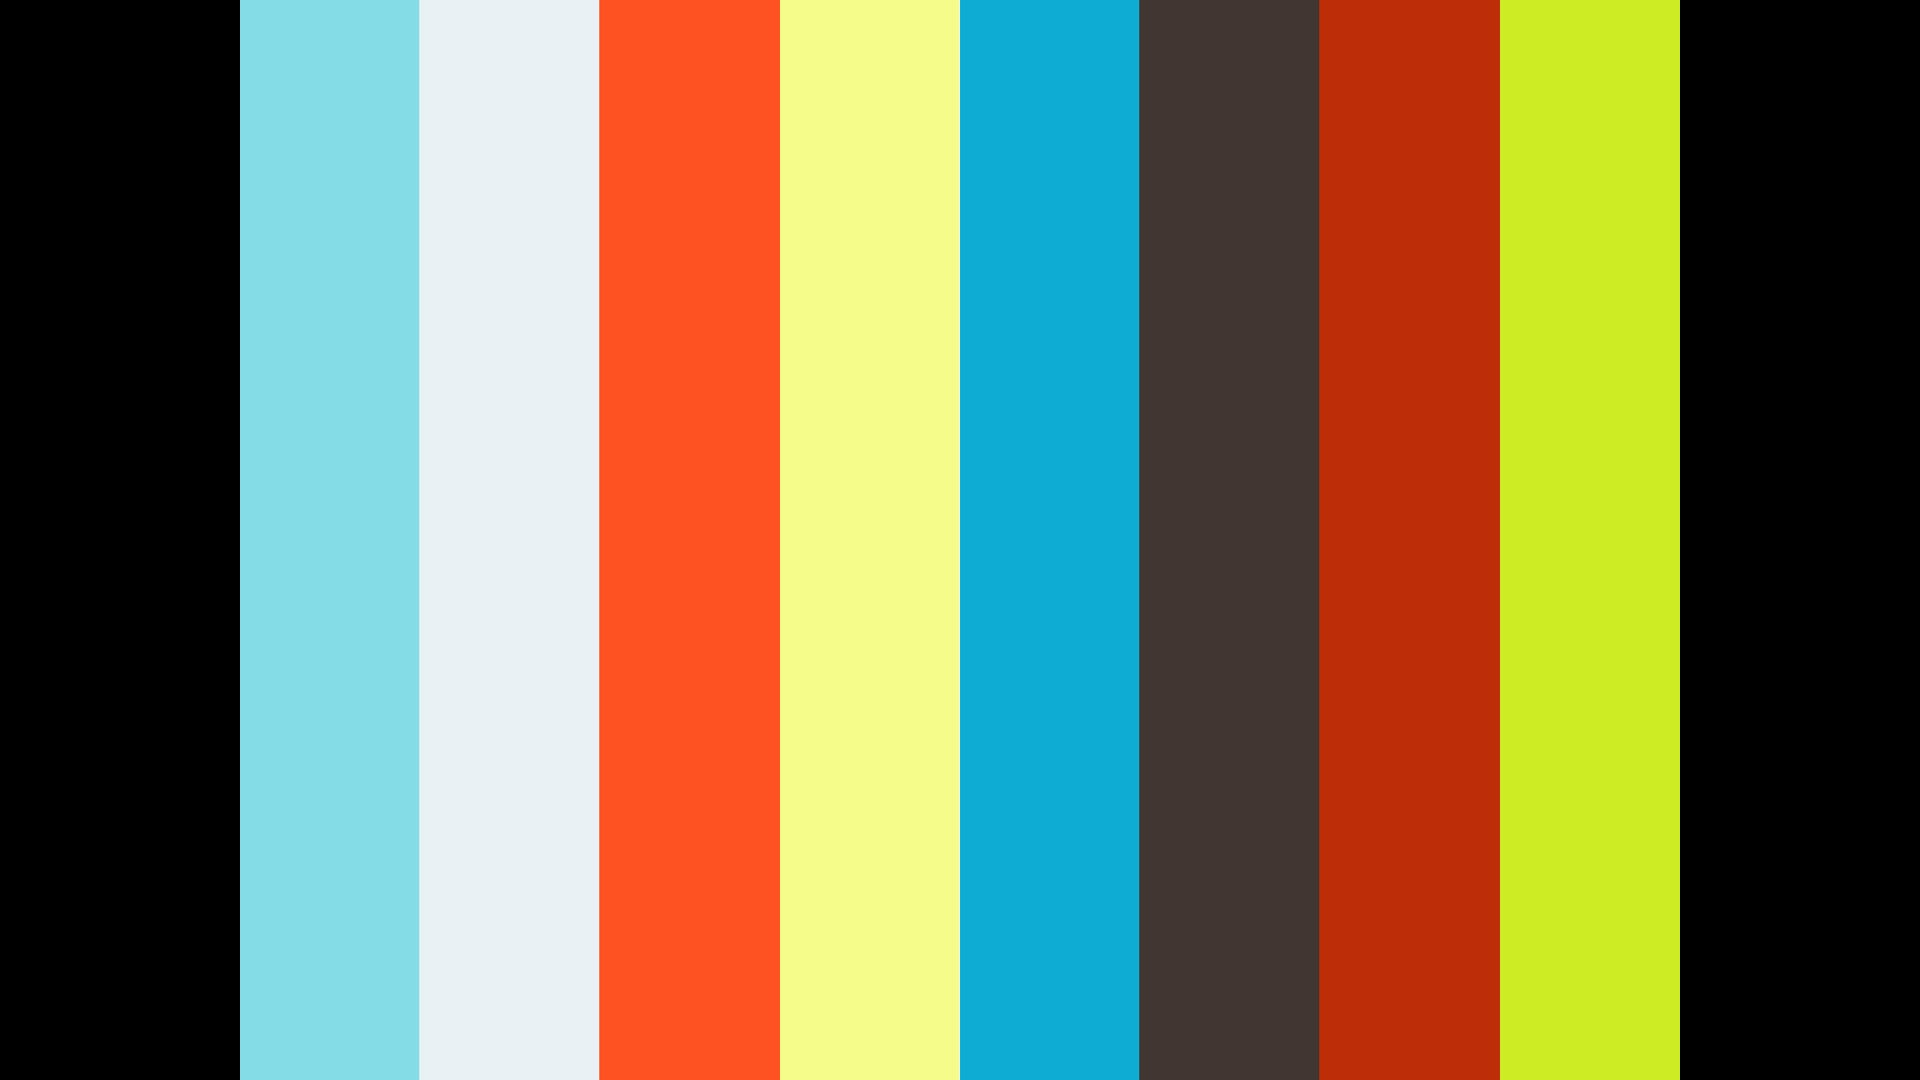 C4D Tutorial: Making a Halloween Pumpkin the Hard Way